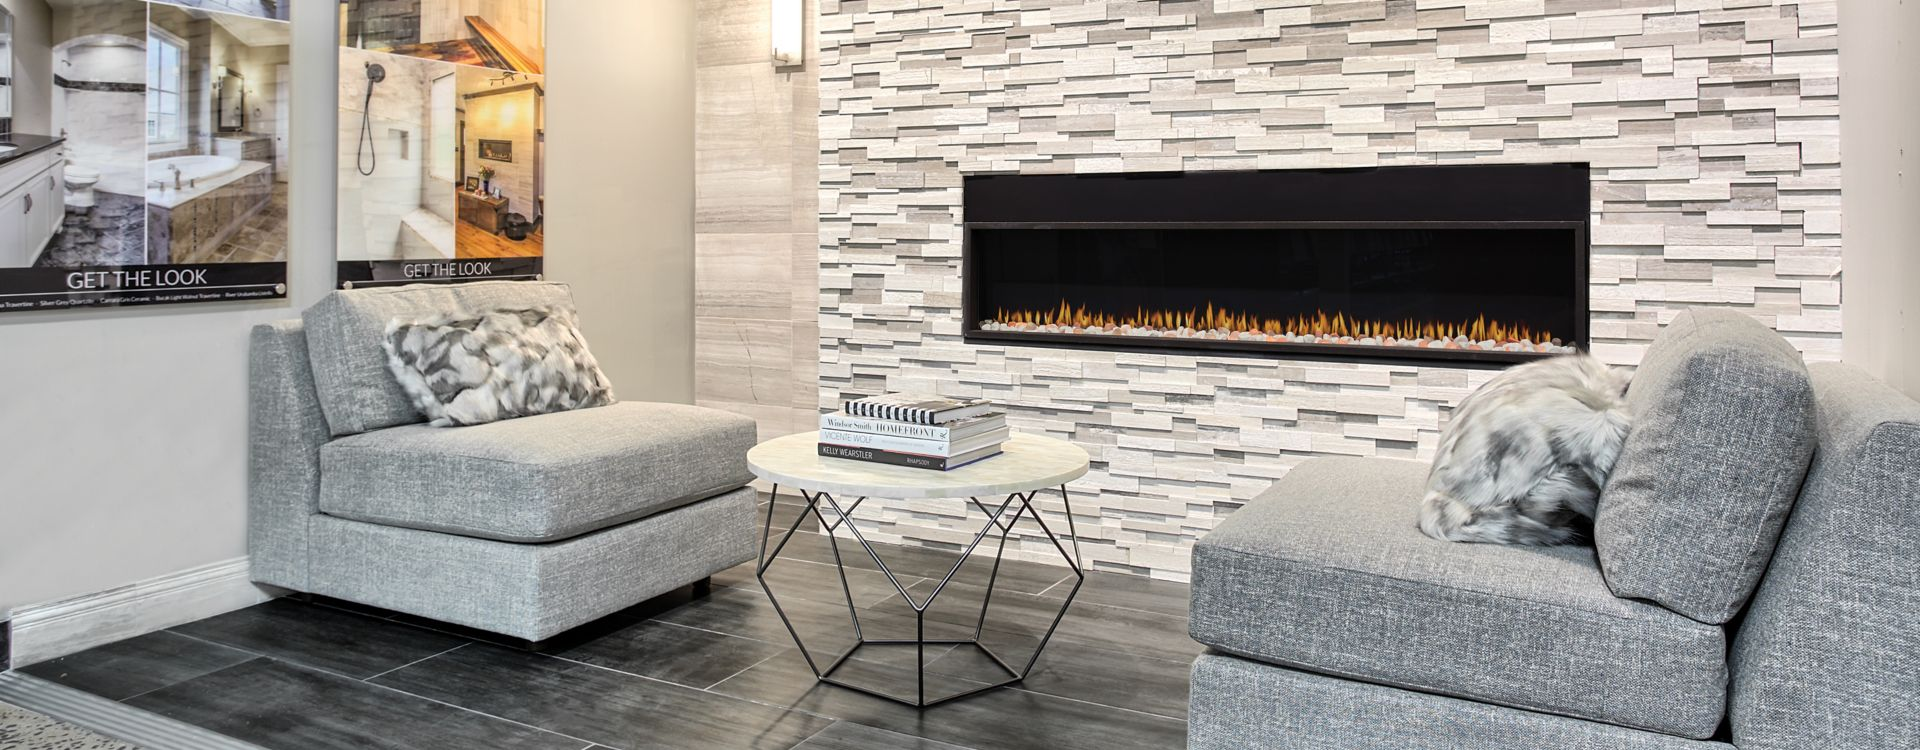 Living Room Tile Designs, Trends & Ideas for 30 – The Tile Shop